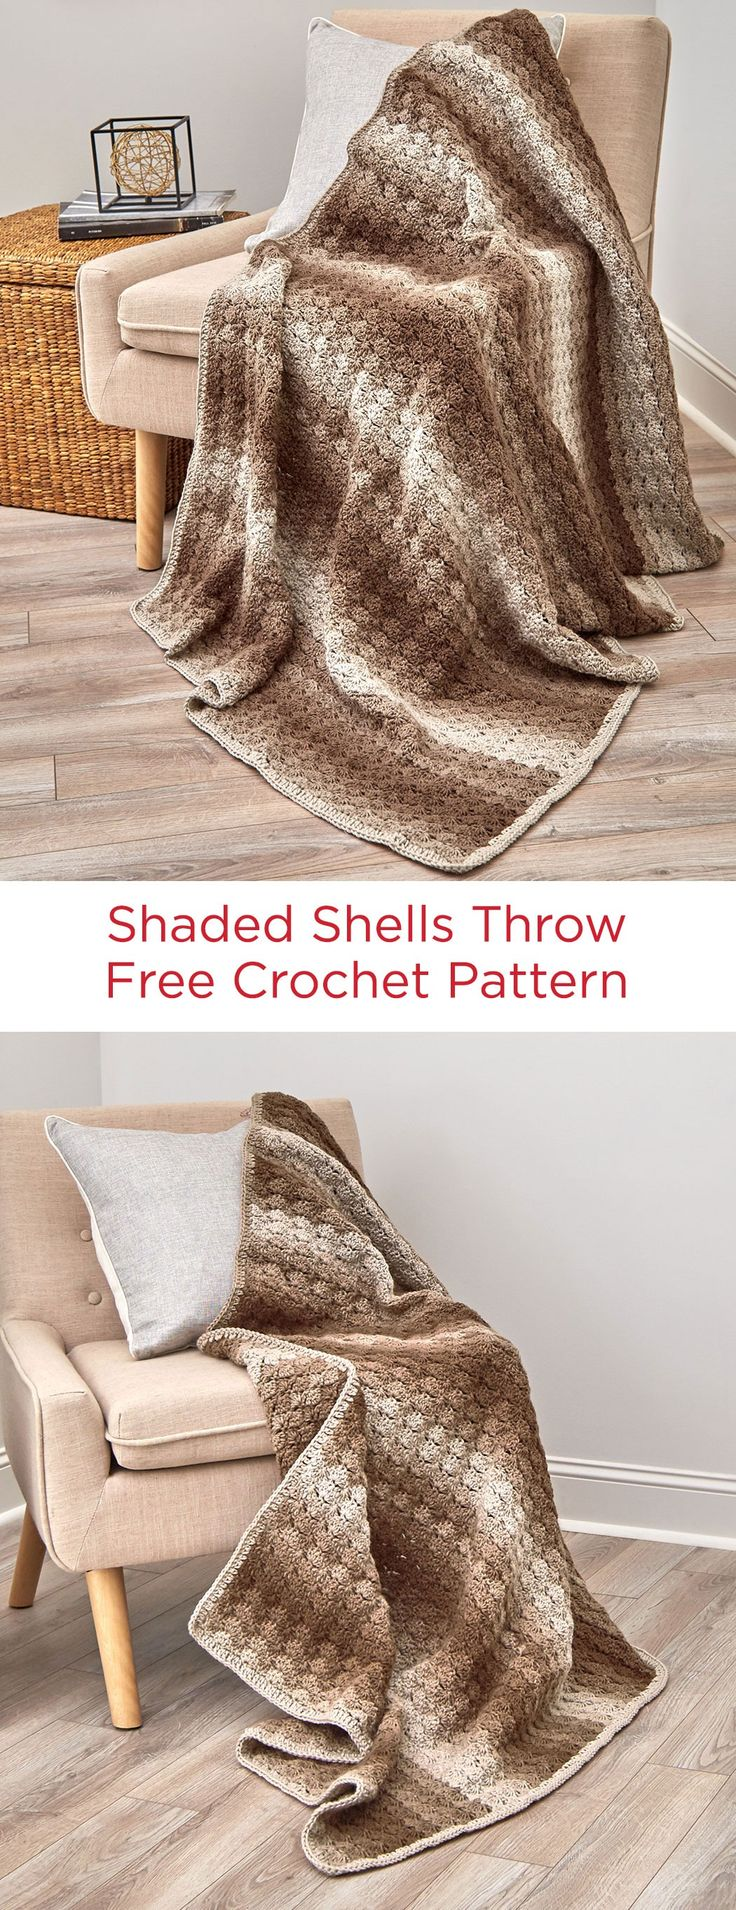 Shaded Shells Throw Free Crochet Pattern in Red Heart Super Saver Ombré yarn -- You'll love how the ombre print color moves from light to dark and back again for that gradient look without having to add different colors! Crochet it in an easy shell stitch that softens the color changes.